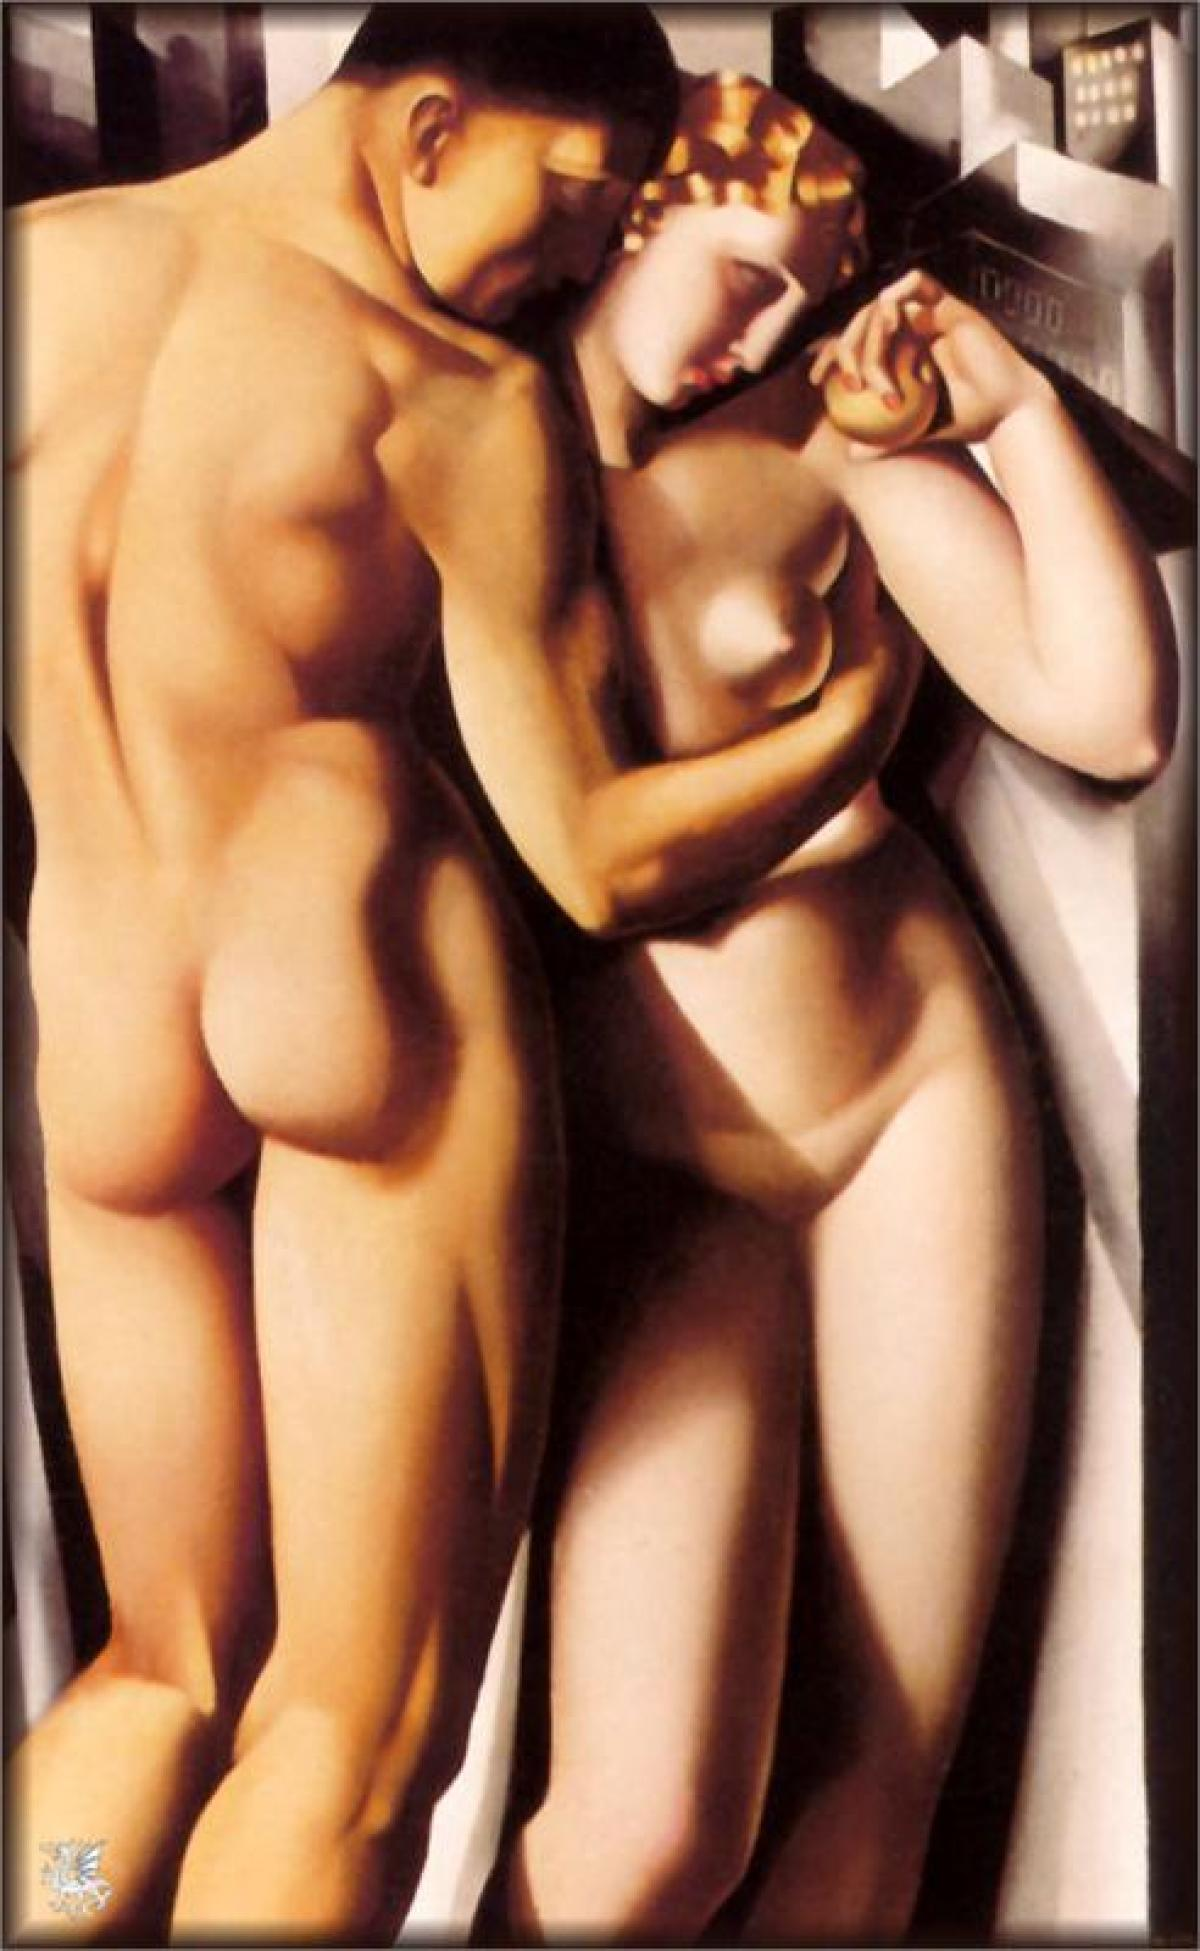 Adam and Eve (1932) by Tamara de Lempicka The Mantle